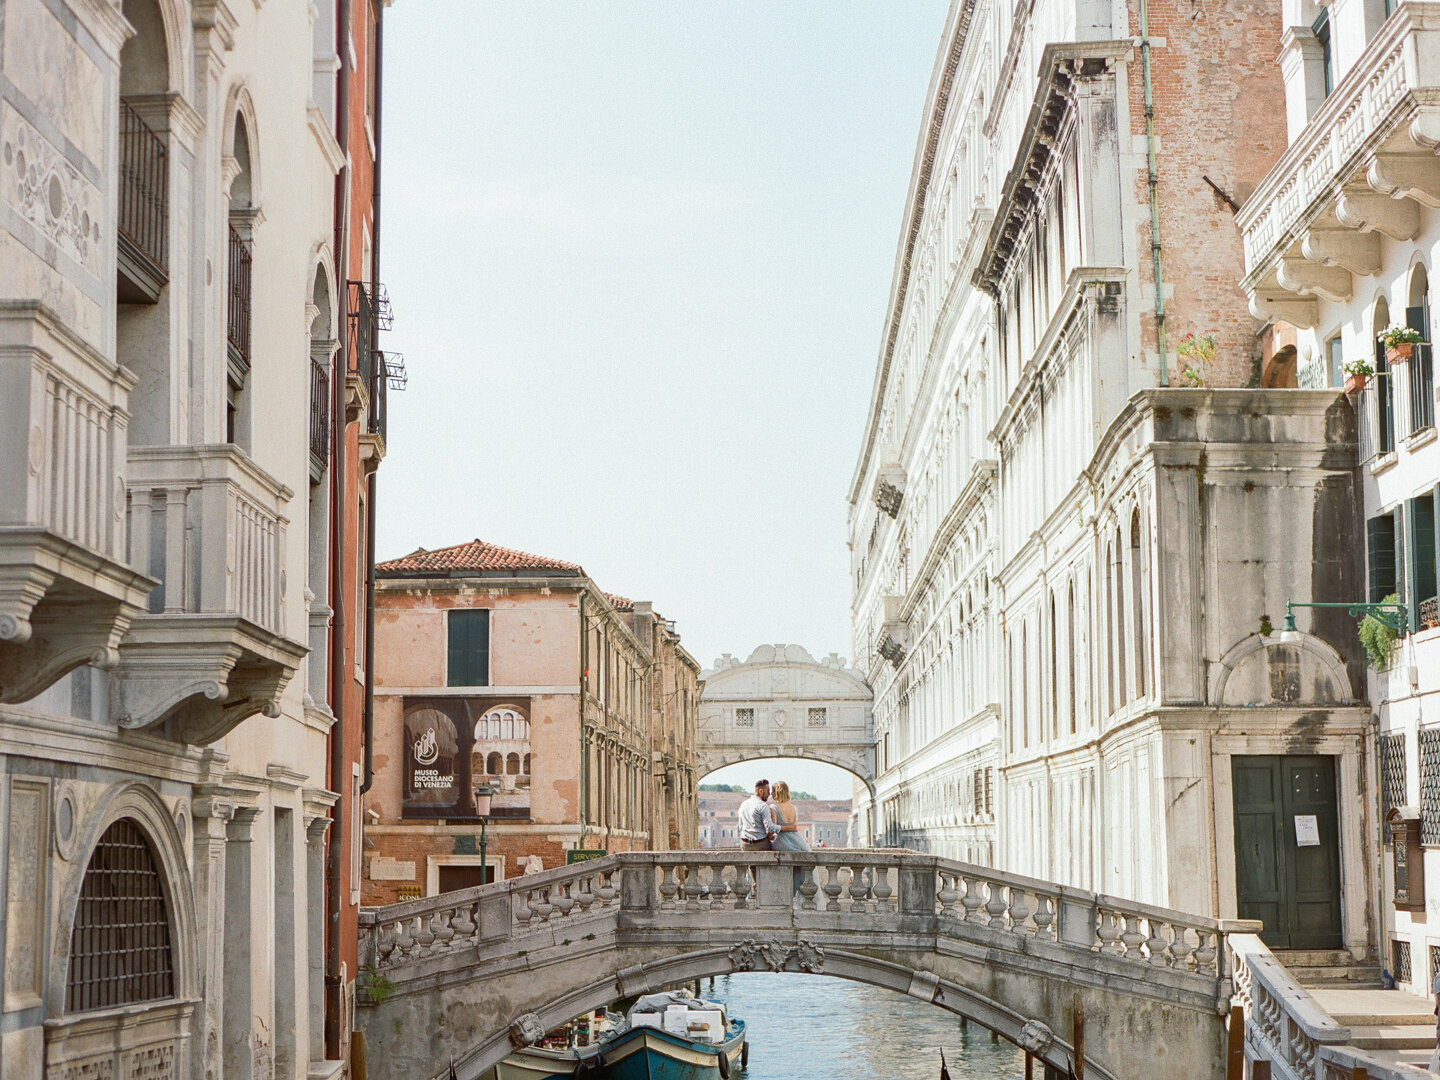 Wedding Photographer in Italy:  A nice, young couple sits and gently hugs on one of the bridges of romantic and sunny Venice